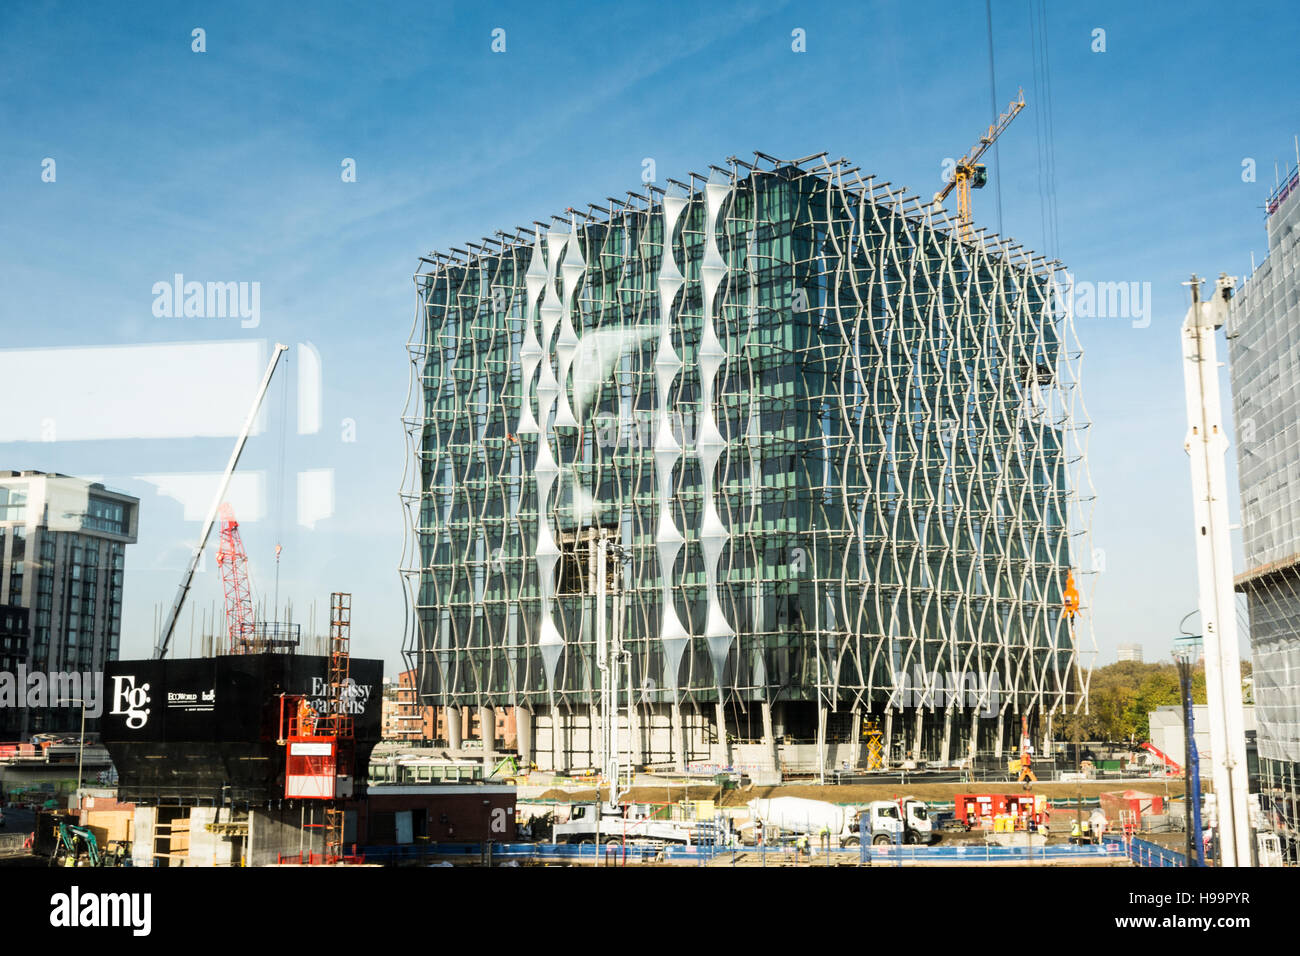 Stock Photo The New Us Embassy At Nine Elms In London Nearing Completion As Seen From A Passing Train